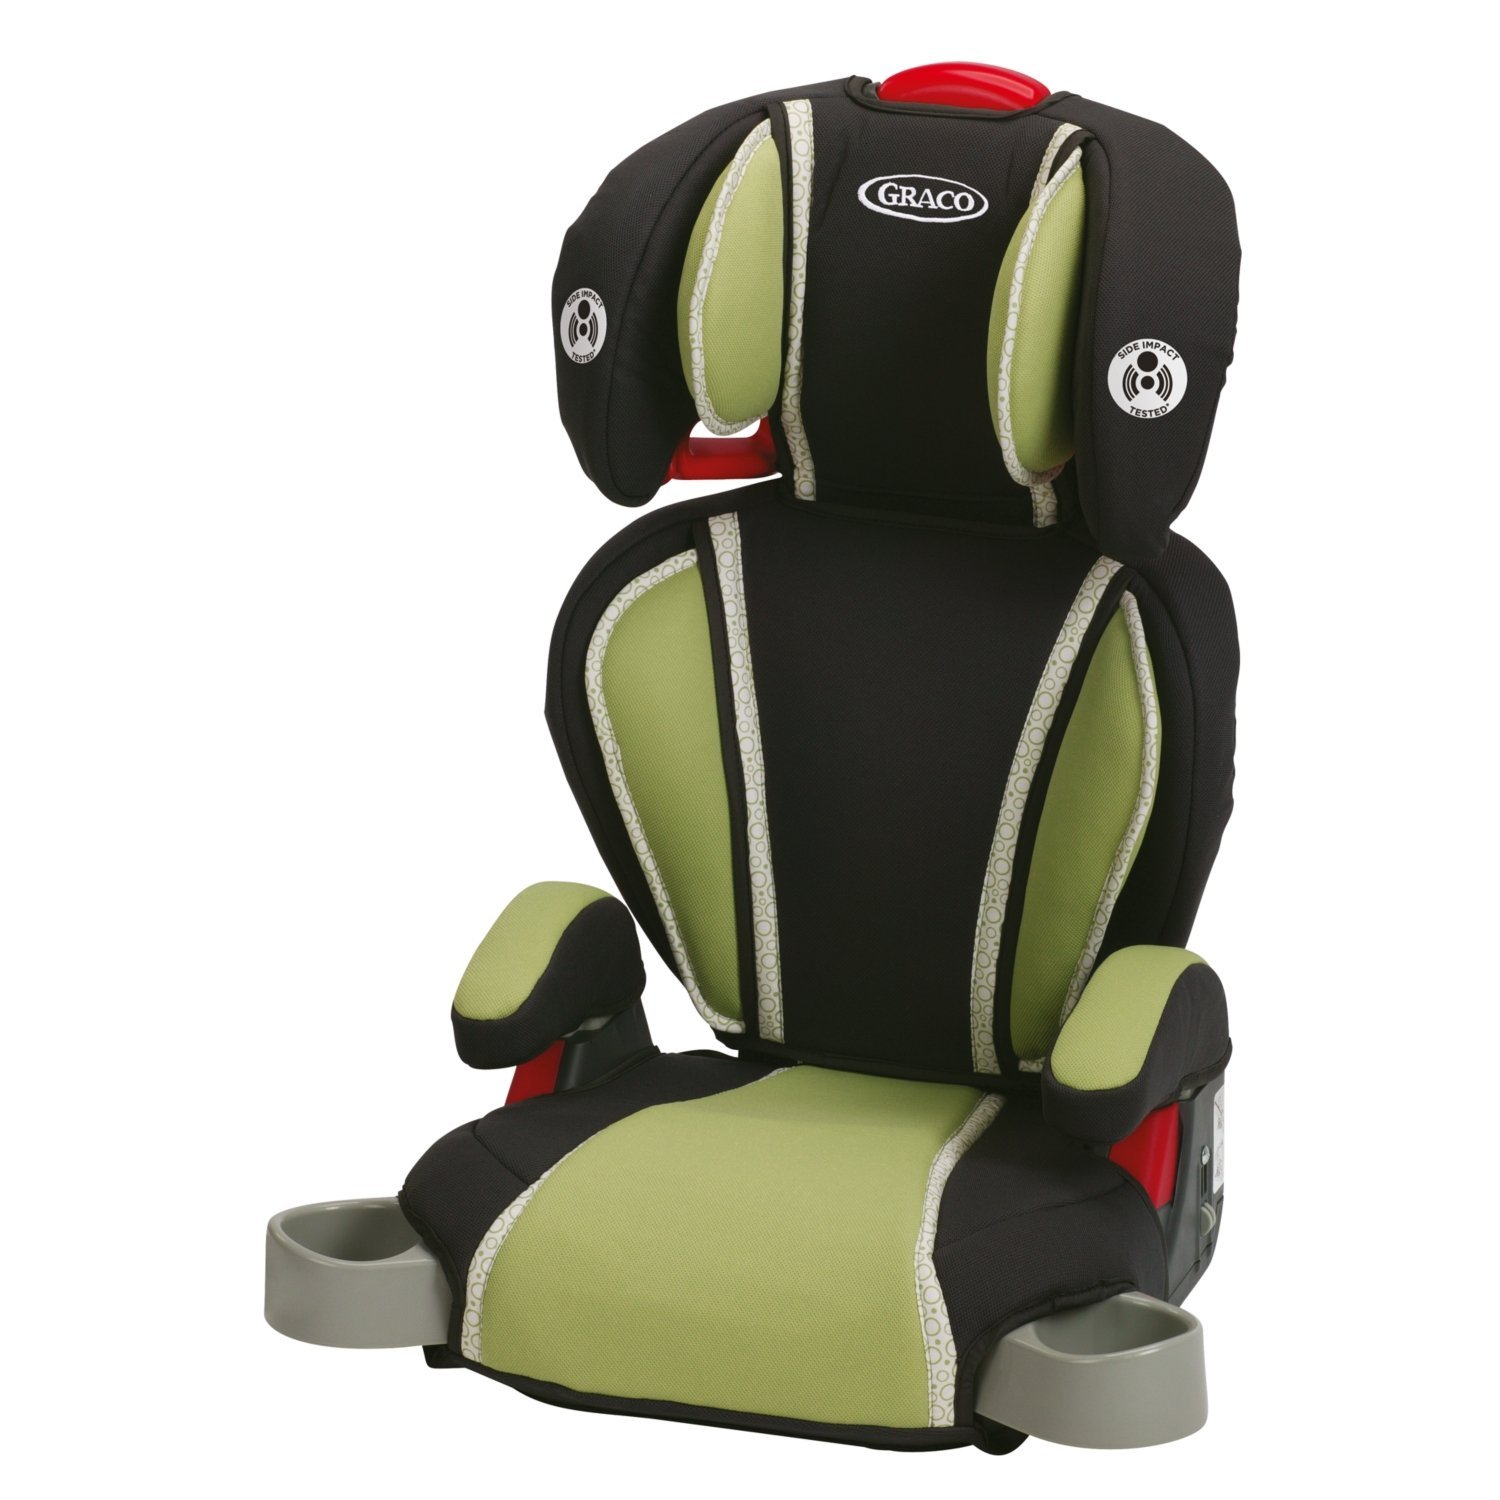 graco highback turbobooster car seat sale for from. Black Bedroom Furniture Sets. Home Design Ideas